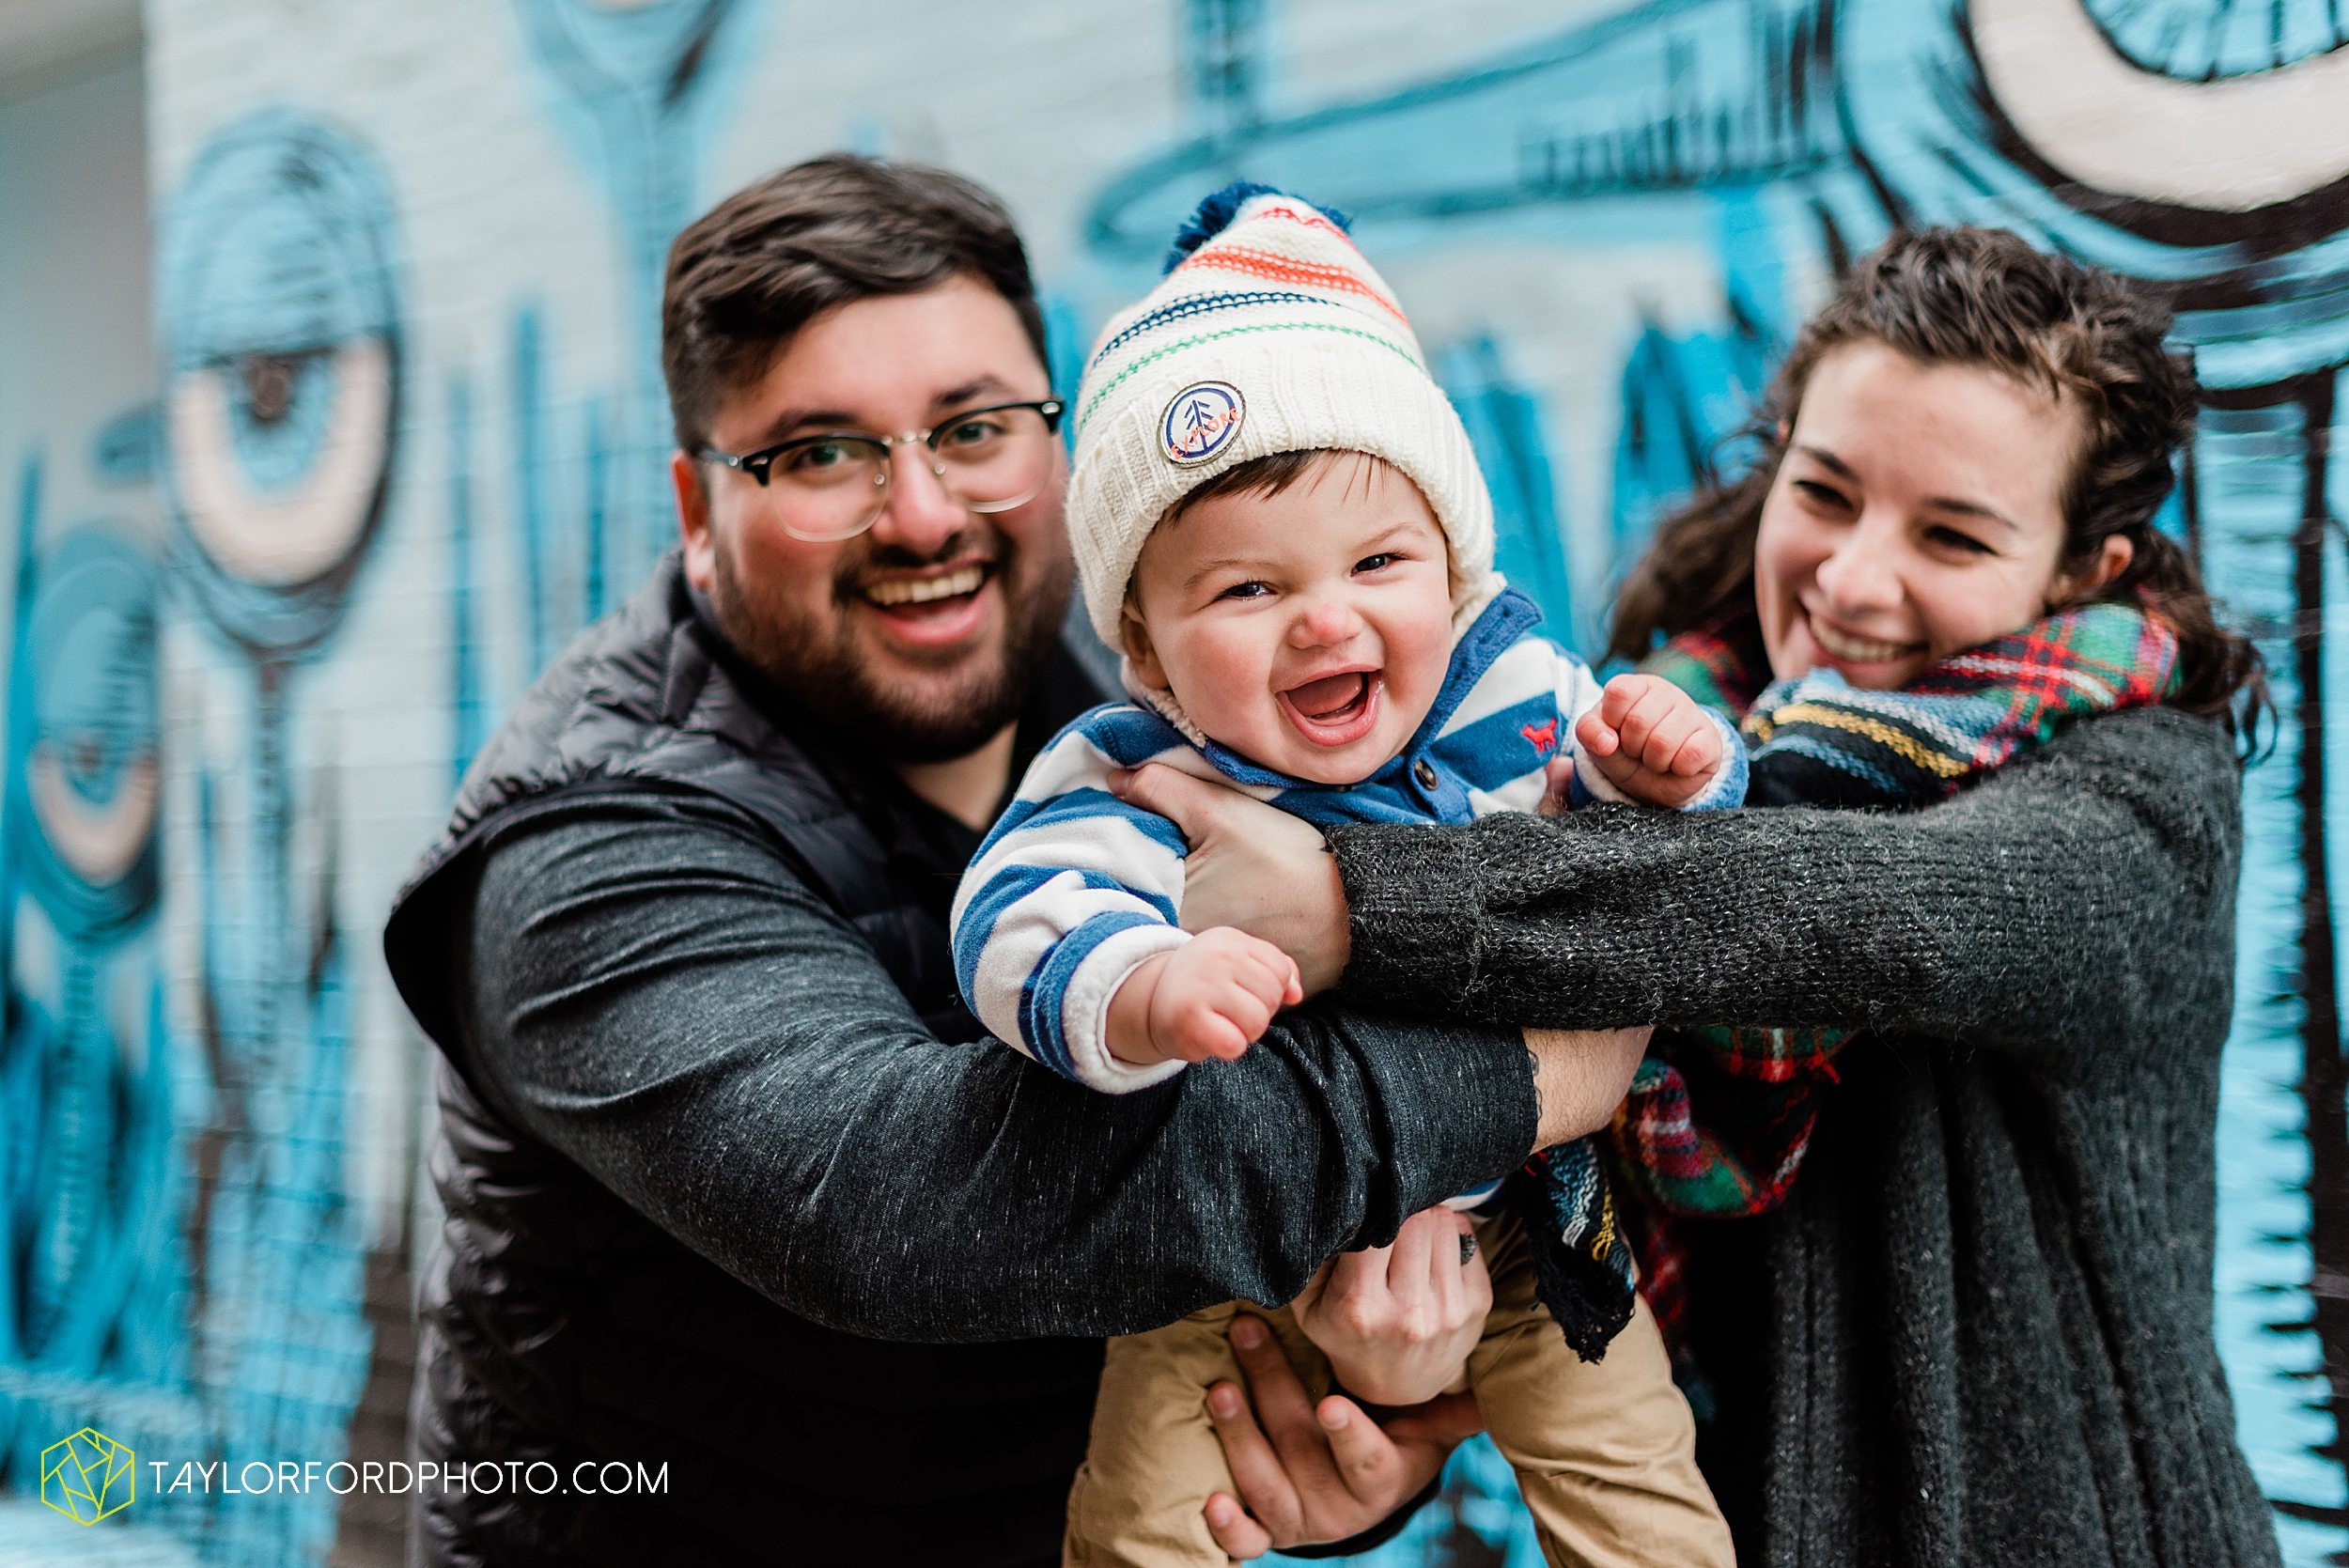 brenna-jose-fort-wayne-indiana-engagement-family-child-downtown-river-greenway-photography-taylor-ford-hirschy-photographer_2317.jpg